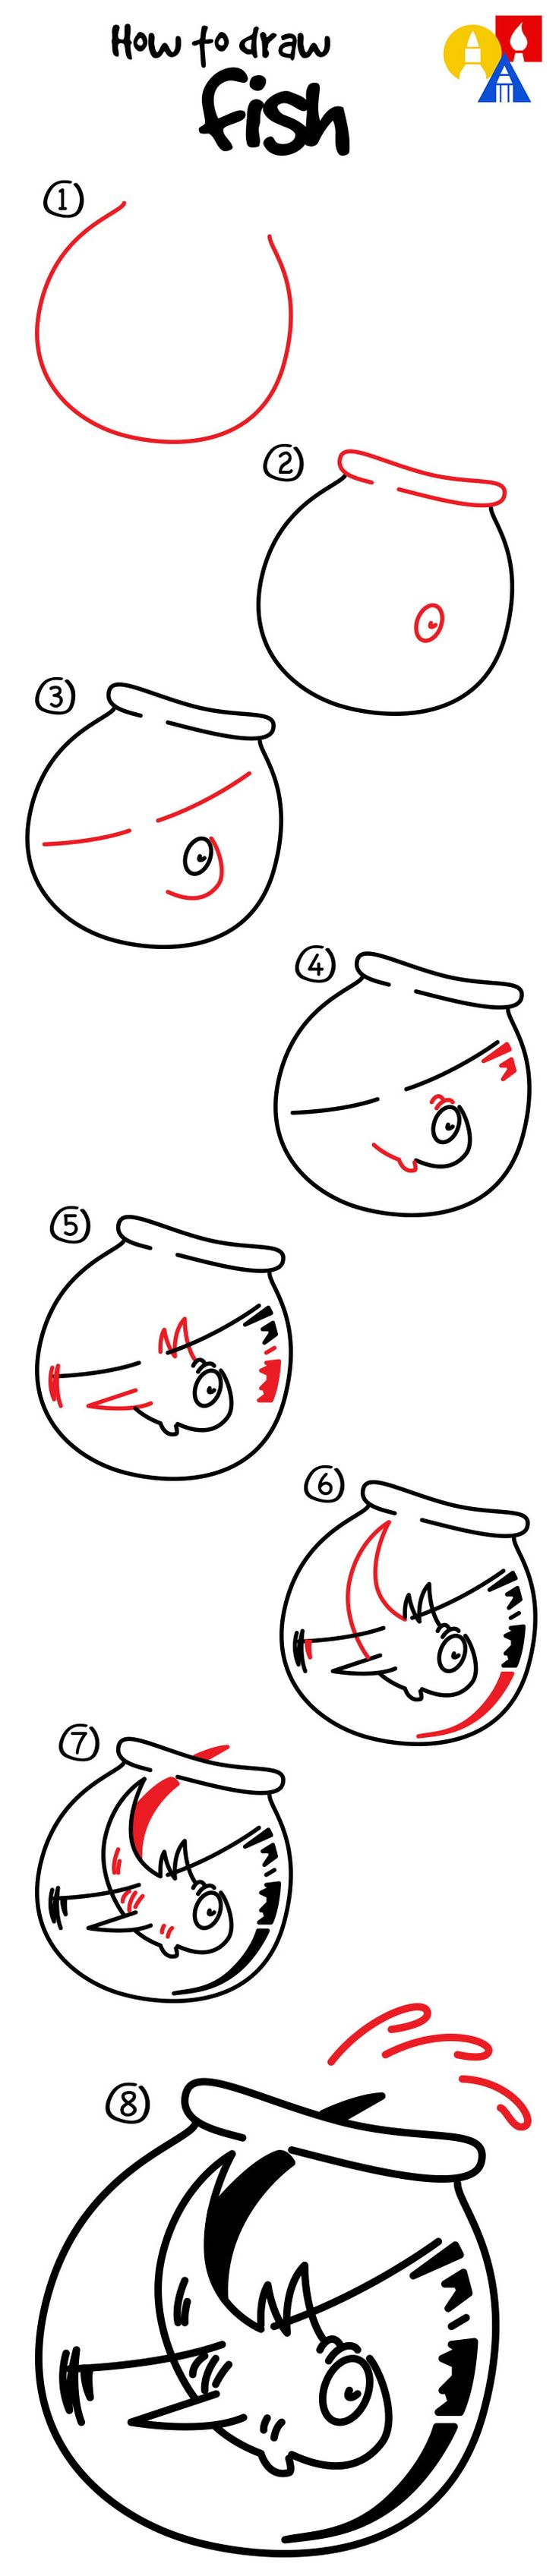 How to draw Fish from The Cat In The Hat! Fun Dr. Seuss project - check out the video for even more explicit instructions and how to add color with pastels